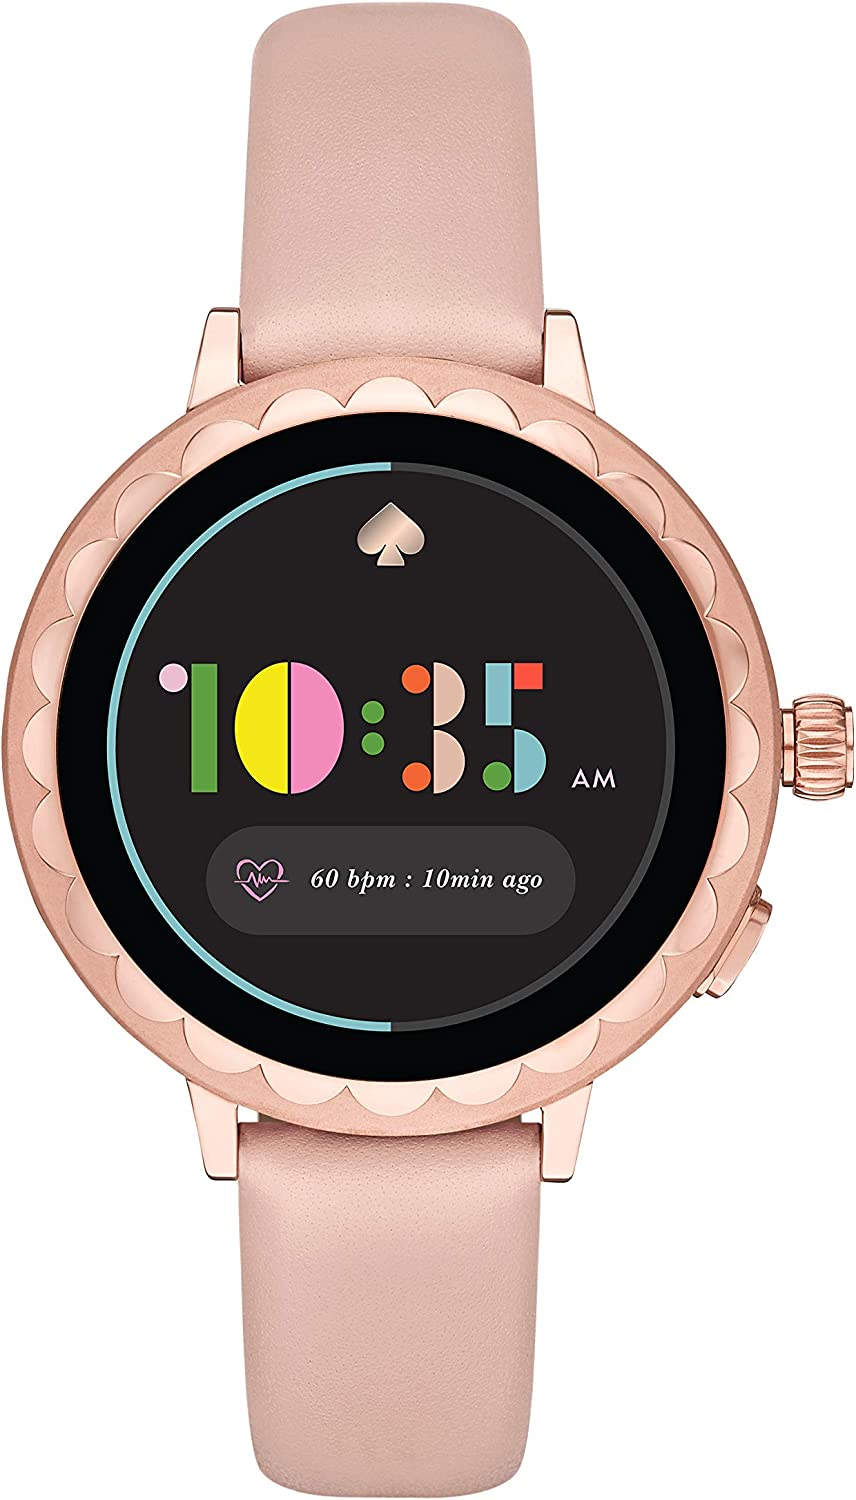 Kate Spade New York Womens Scallop Smartwatch 2 powered with Wear OS by Google- pairs wirelessly with both iPhones and Android